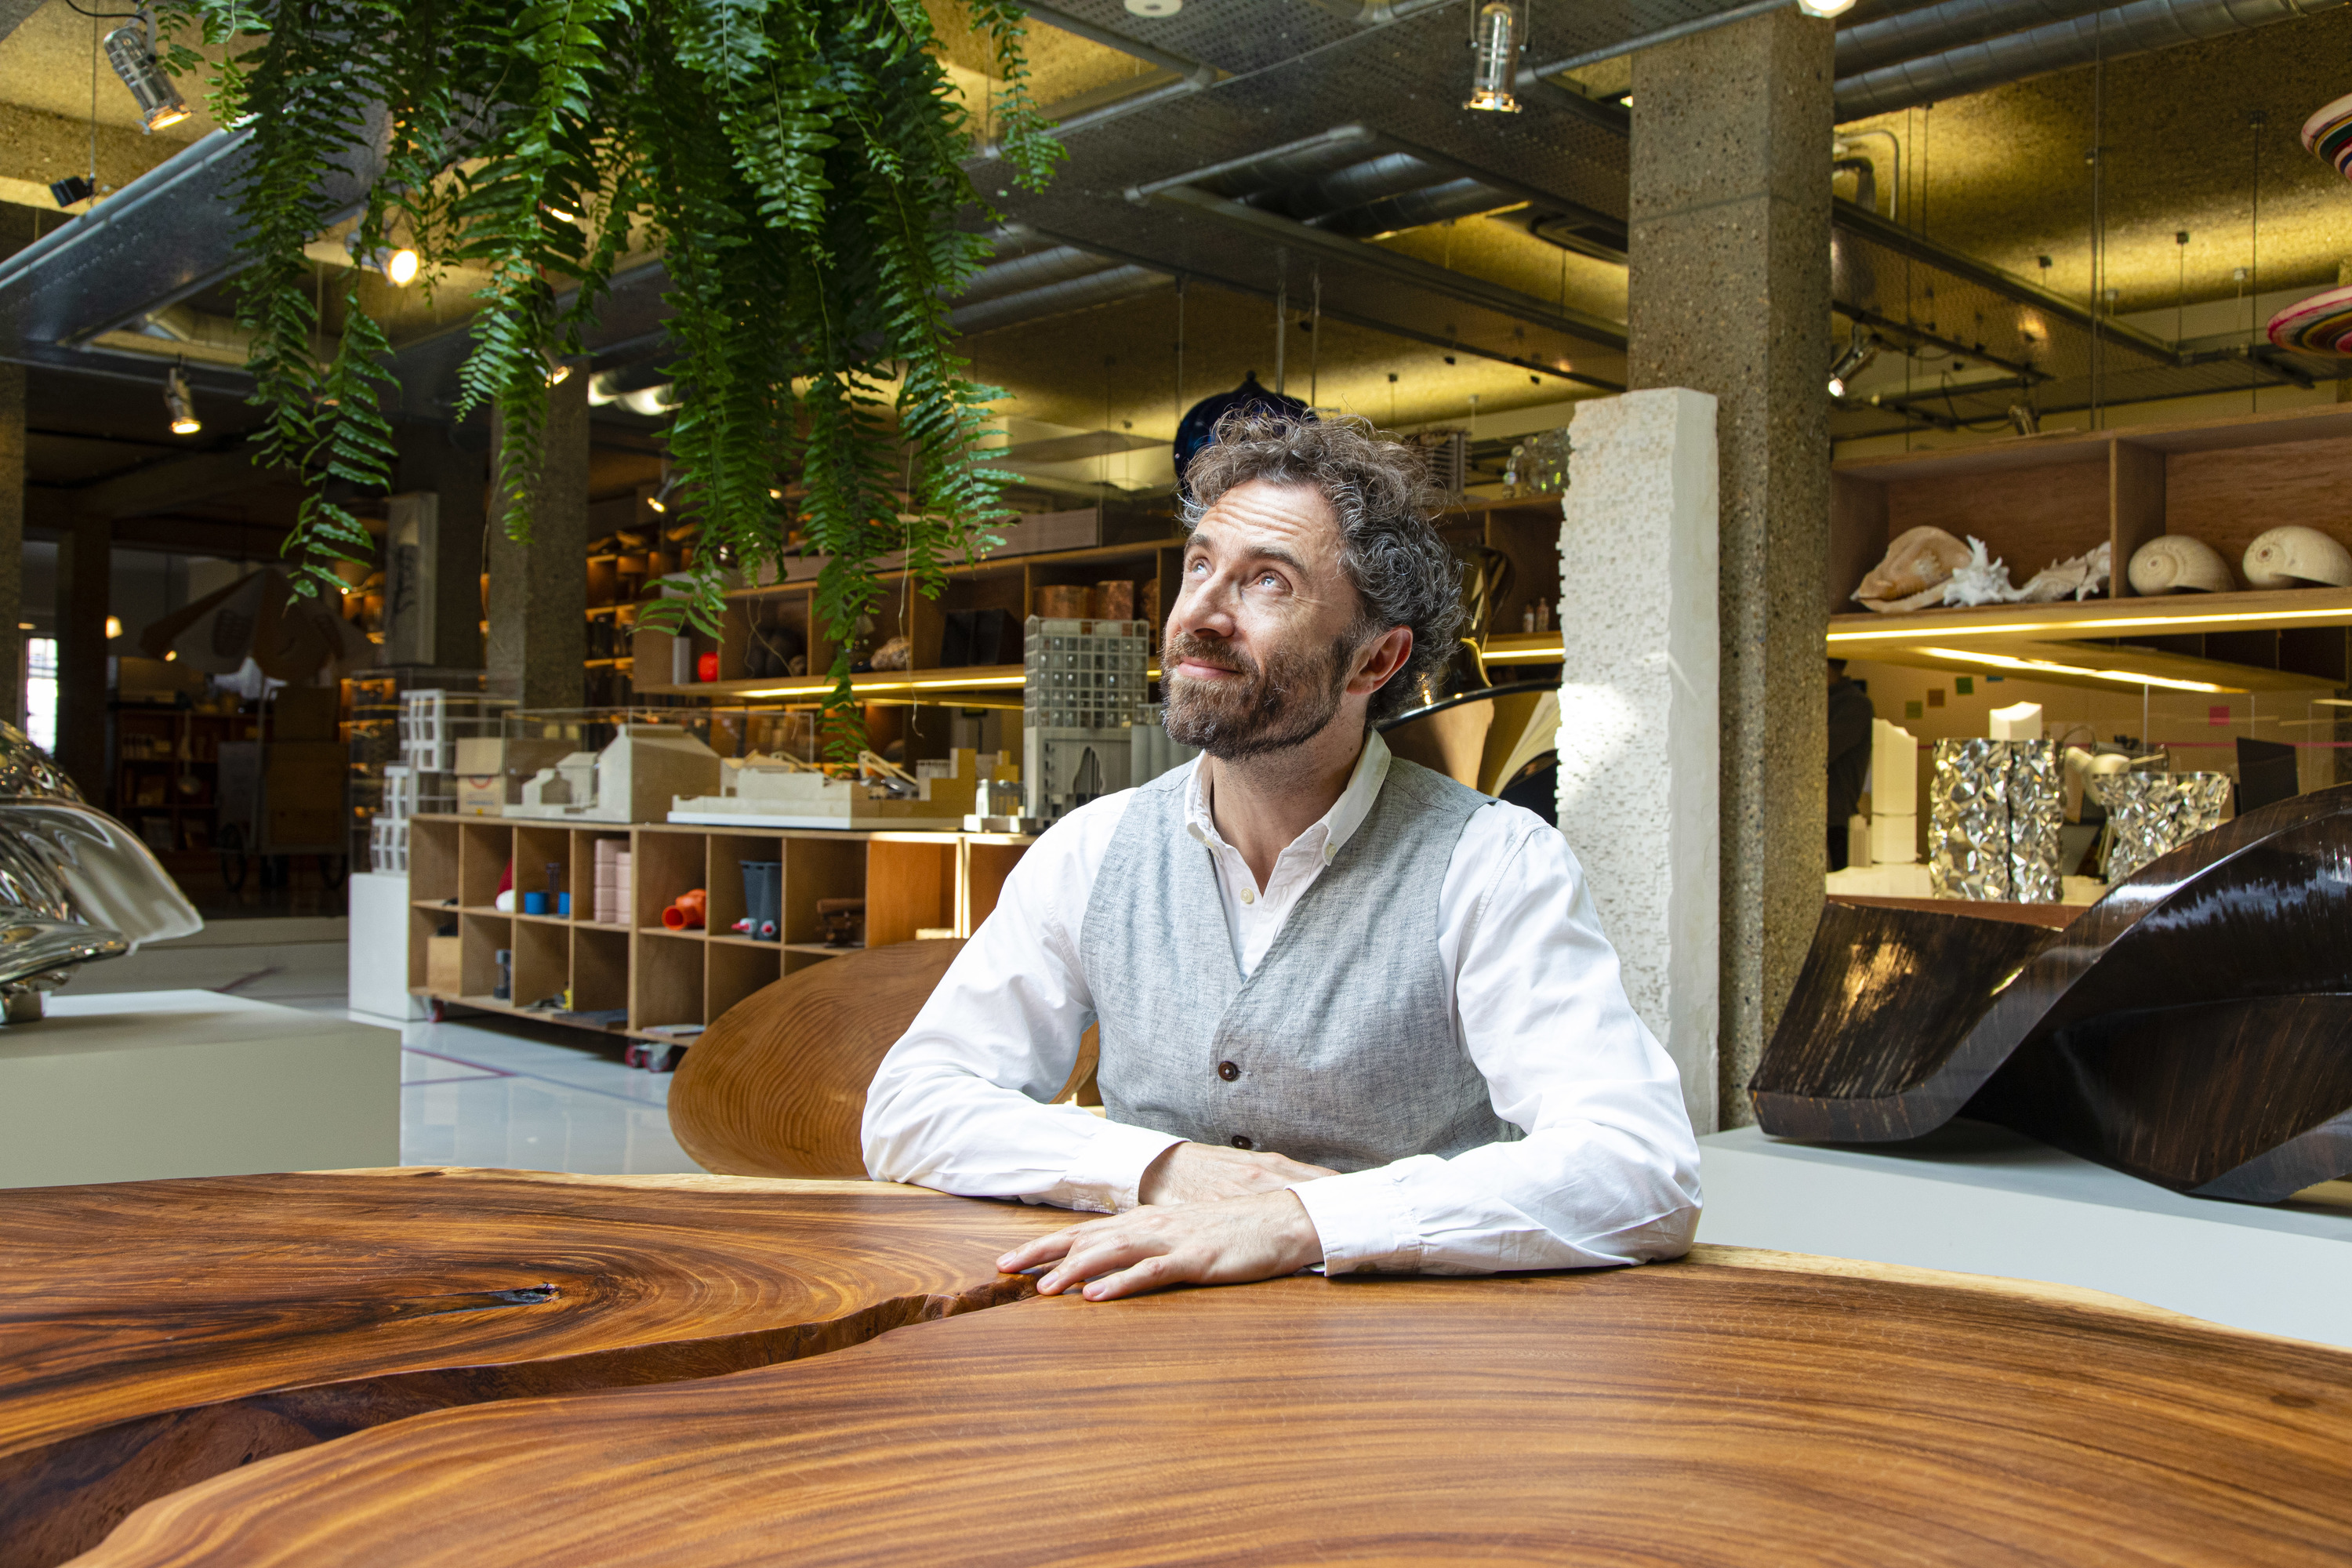 'We live in complex times': Thomas Heatherwick on what lies in store for London